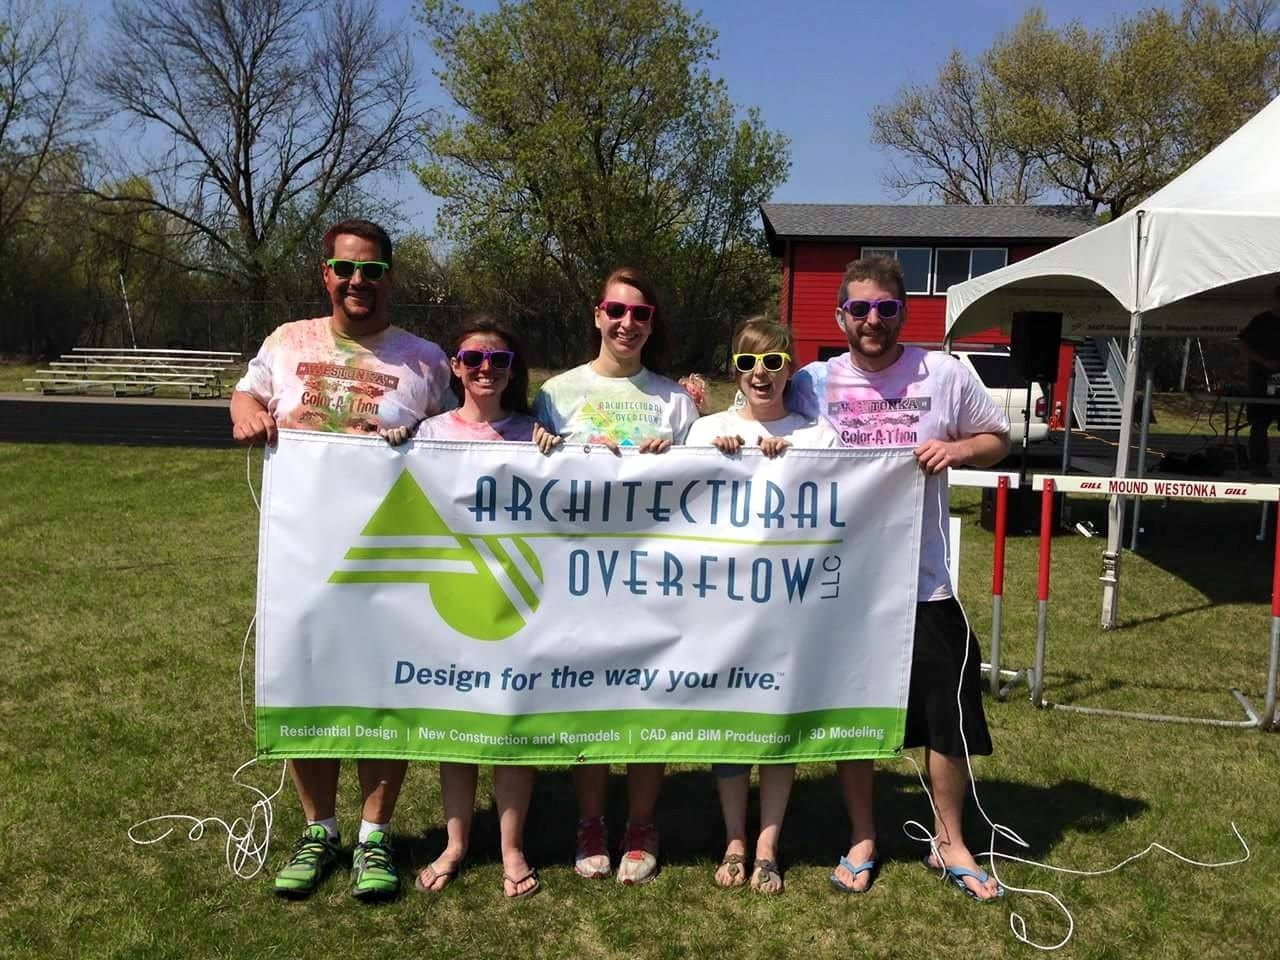 More of our team representing the westonka color-a-thon